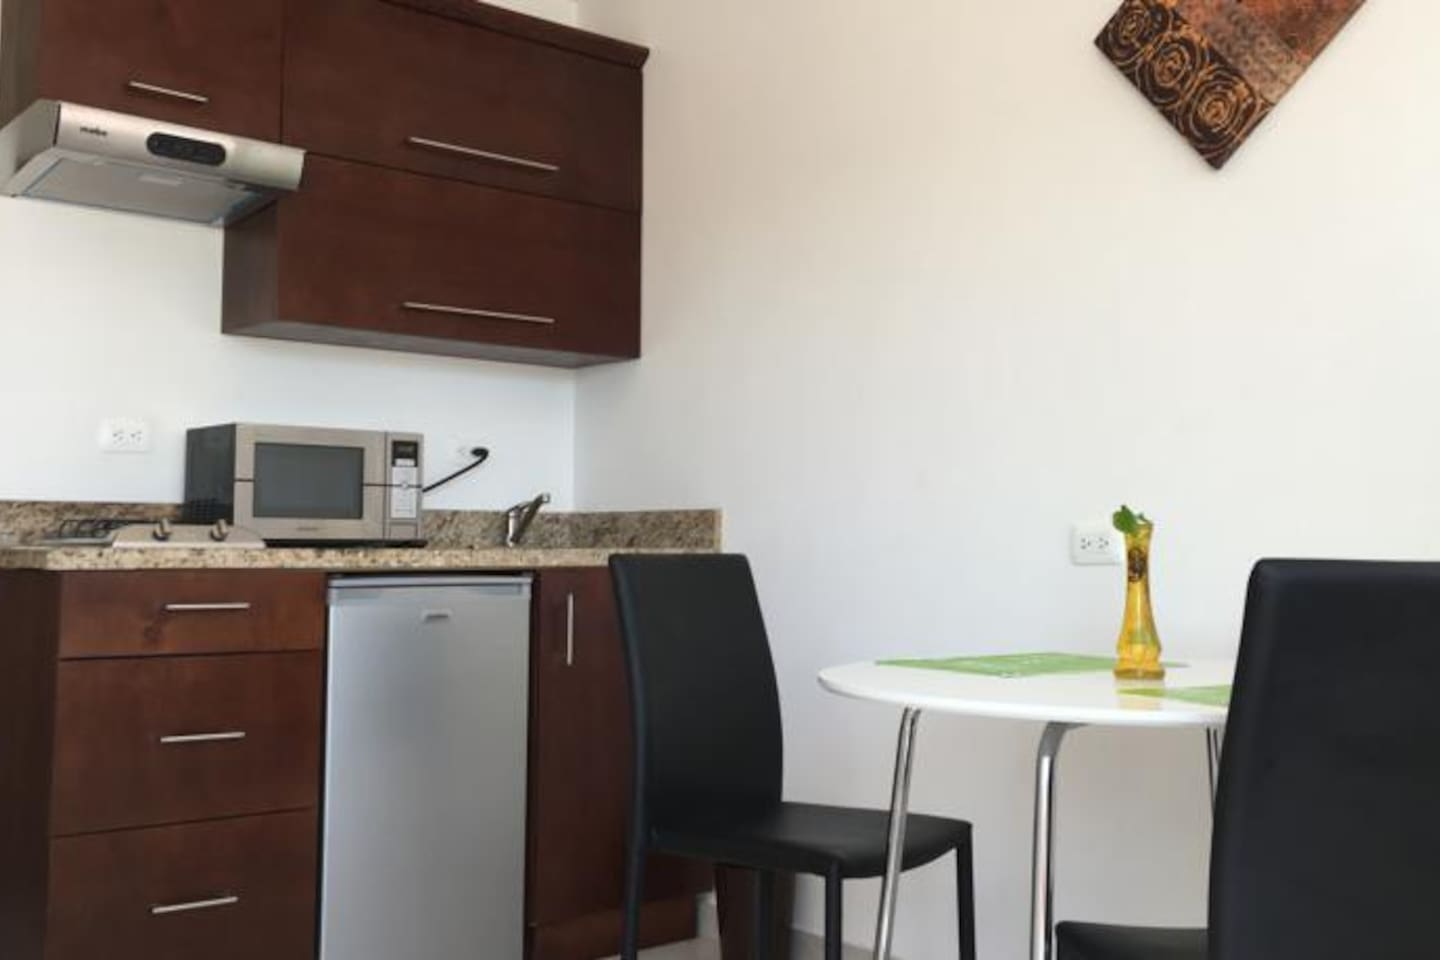 This beautiful new apartment has a kitchen, equipped with a microwave and Fridge and also has a table with two chairs to enjoy a great meal